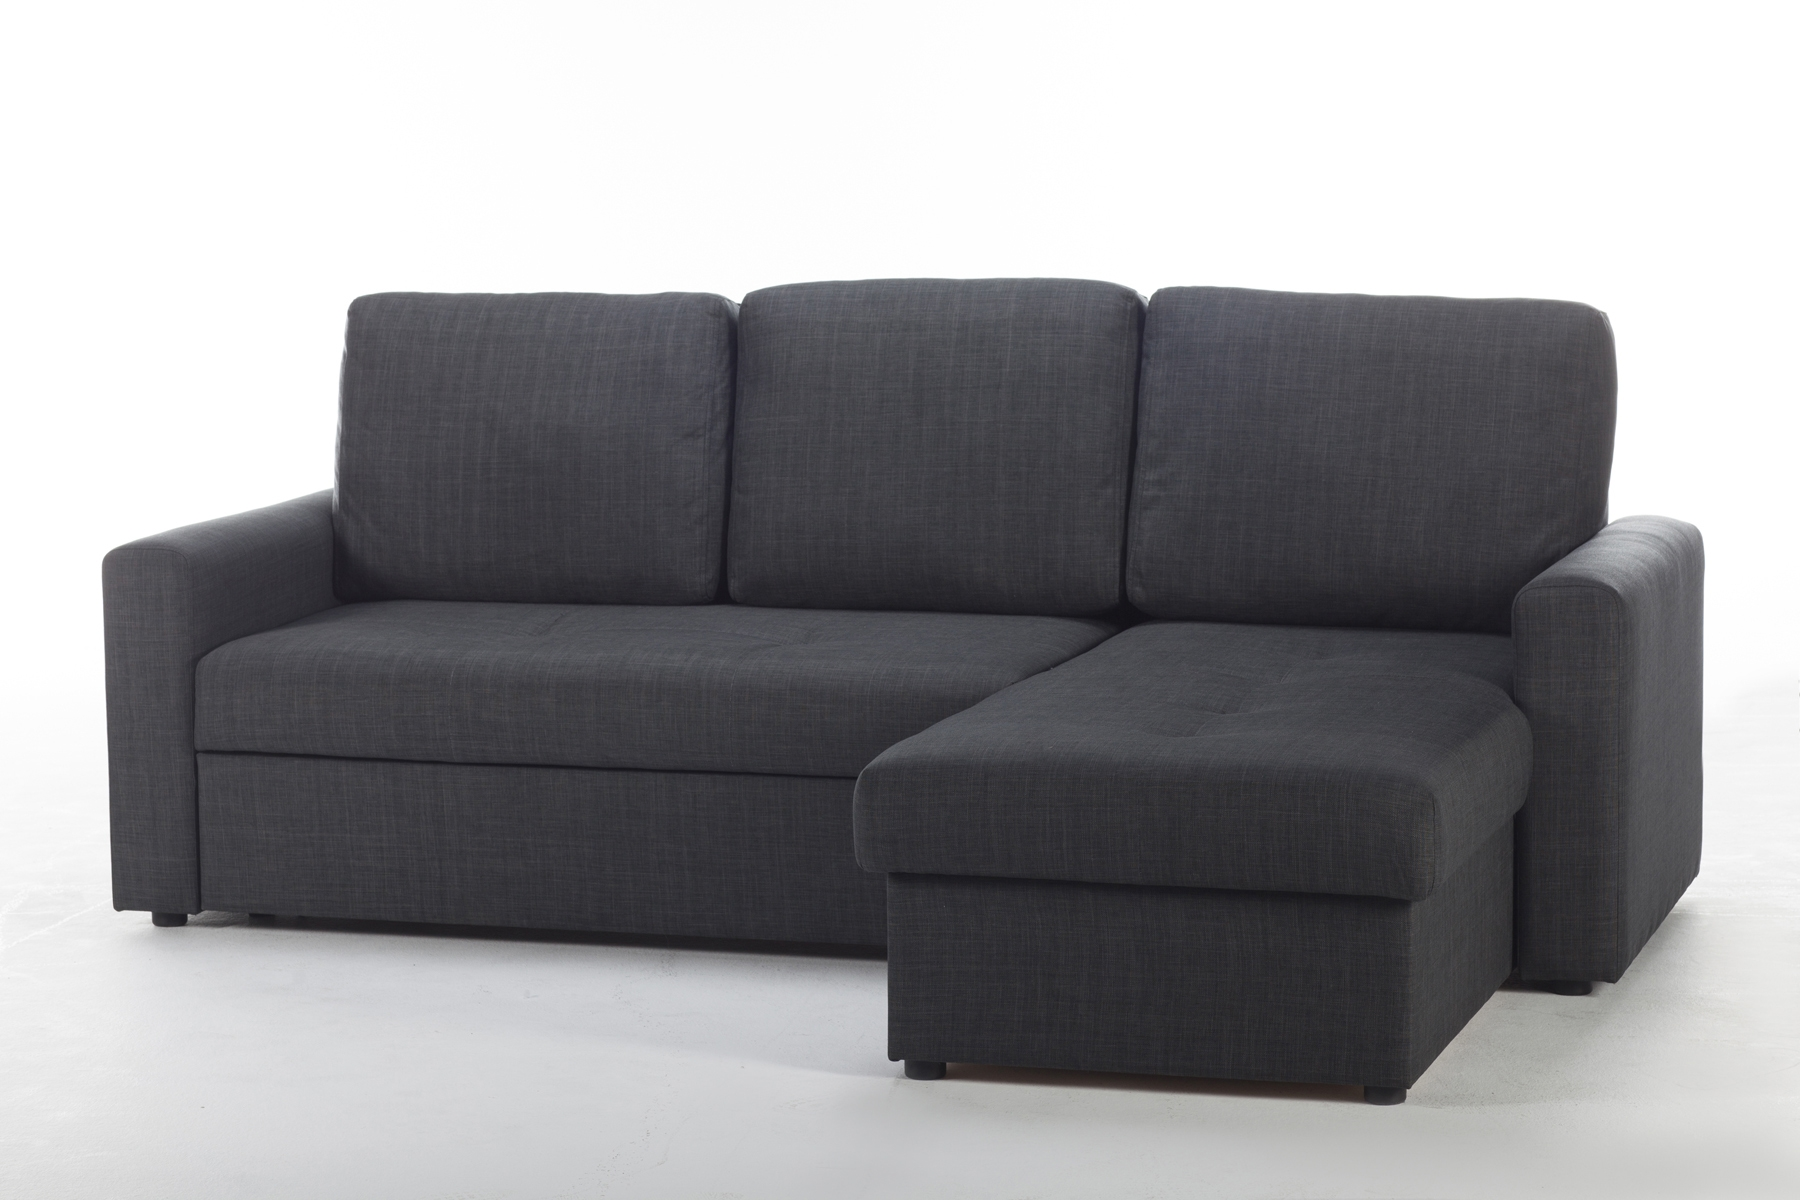 Fethiye Dark Grey Fabric Sectional Sofa Sunset With Fabric Sectional Sofa (Image 6 of 15)